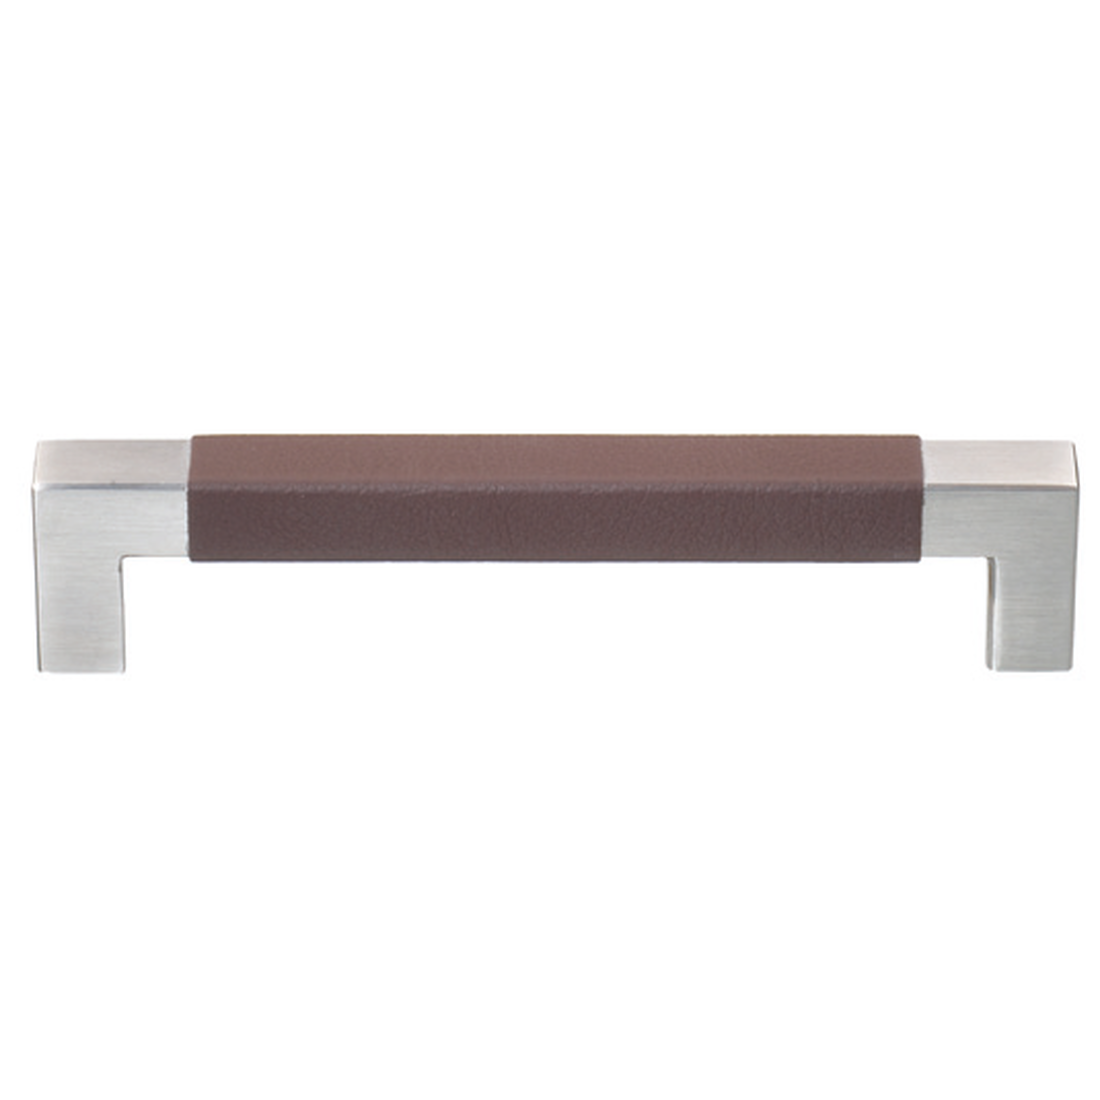 CALUS HANDLE 12X12MM, WITH PLAIN LEATHER, COCOA